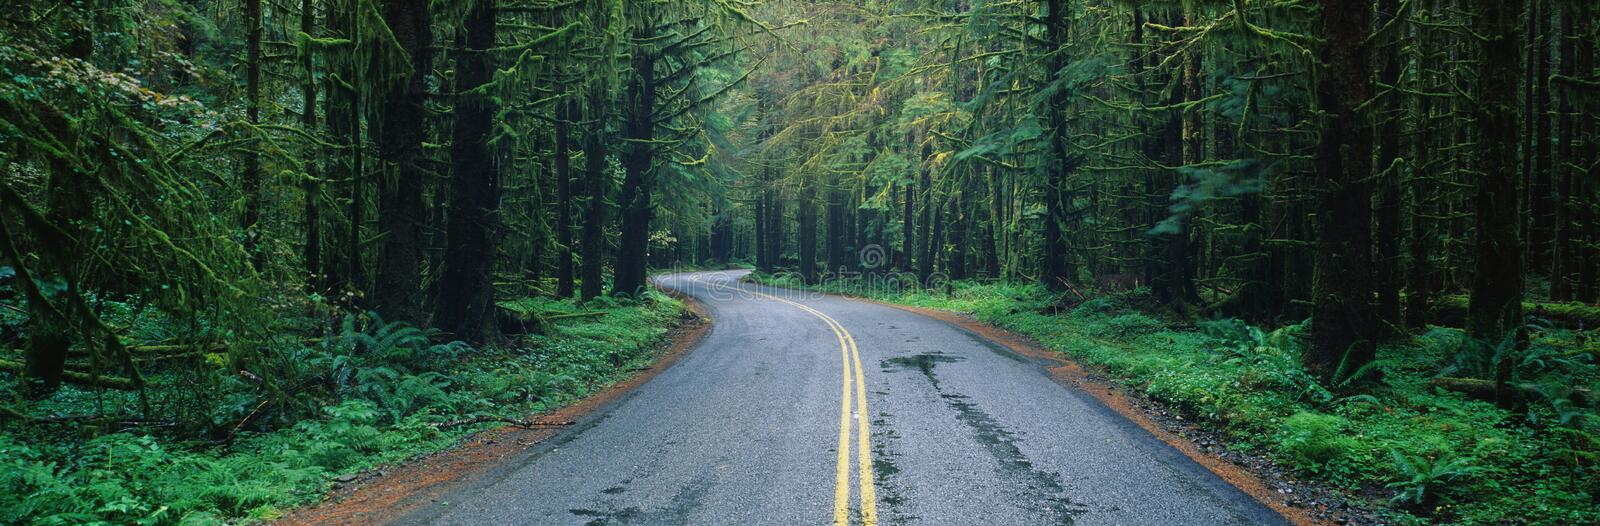 Download Road In Olympic National Park, WA Stock Photo - Image: 23149666